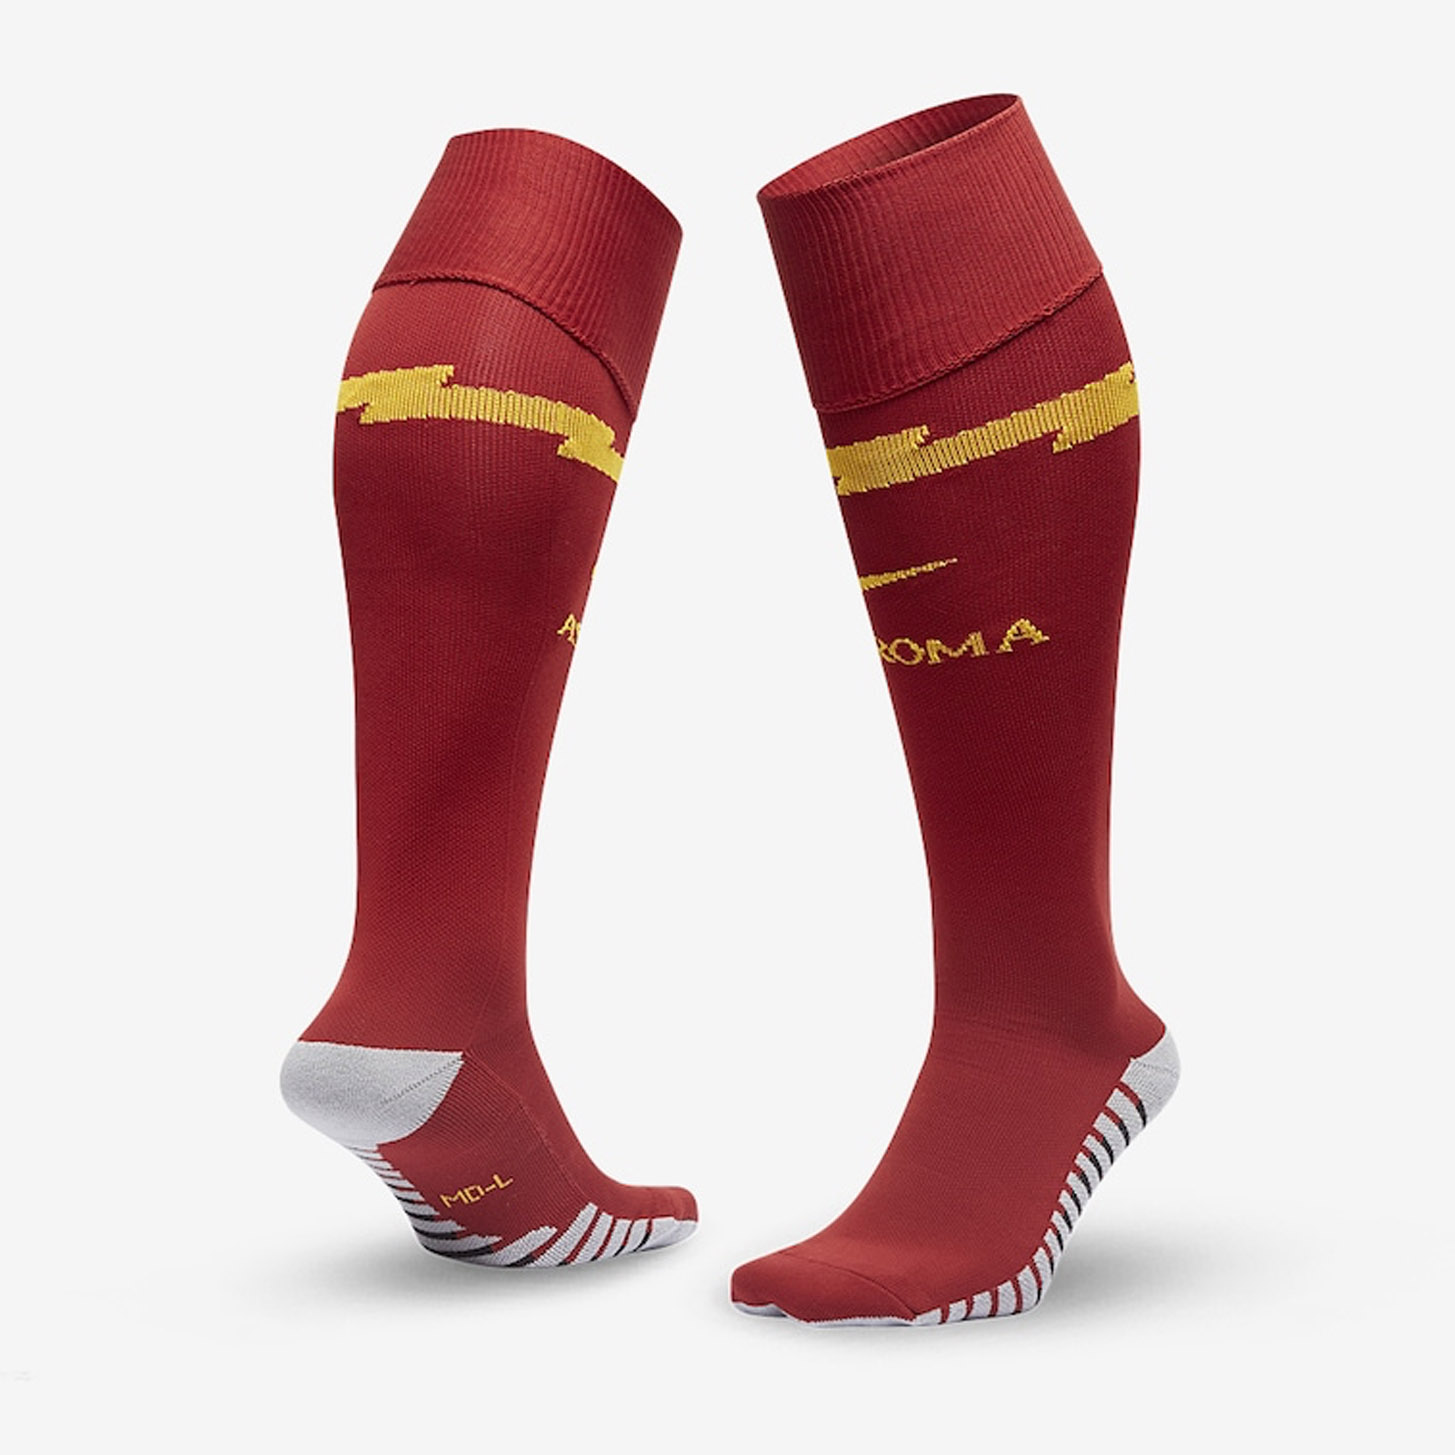 sock-sroma-home-19-20.jpg